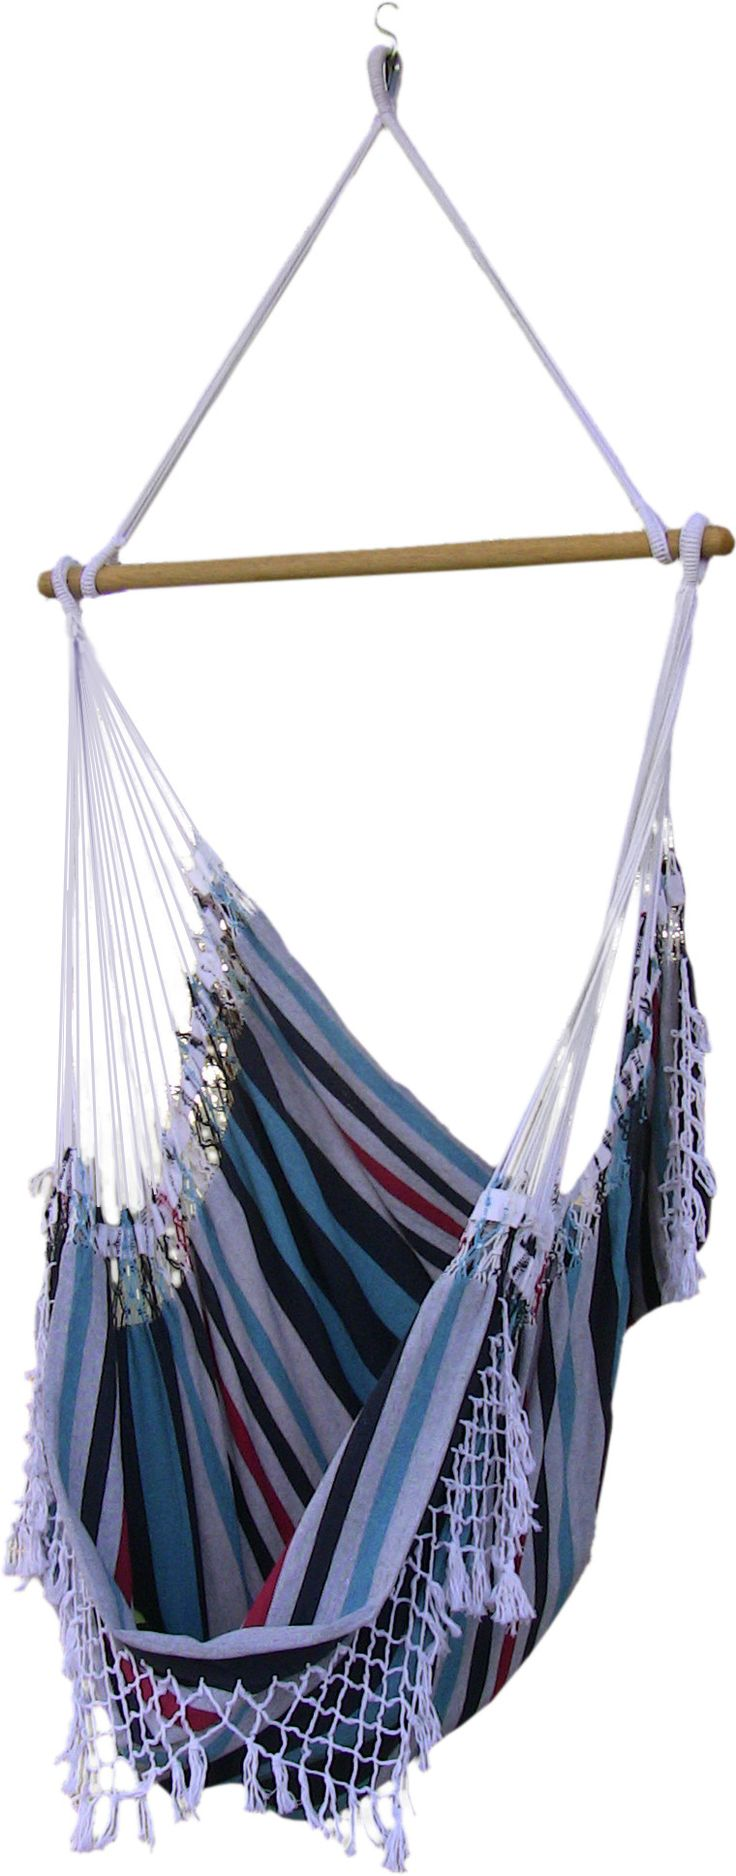 Vivere Hammocks Brazilian Hammock Chair U0026 Reviews | Wayfair